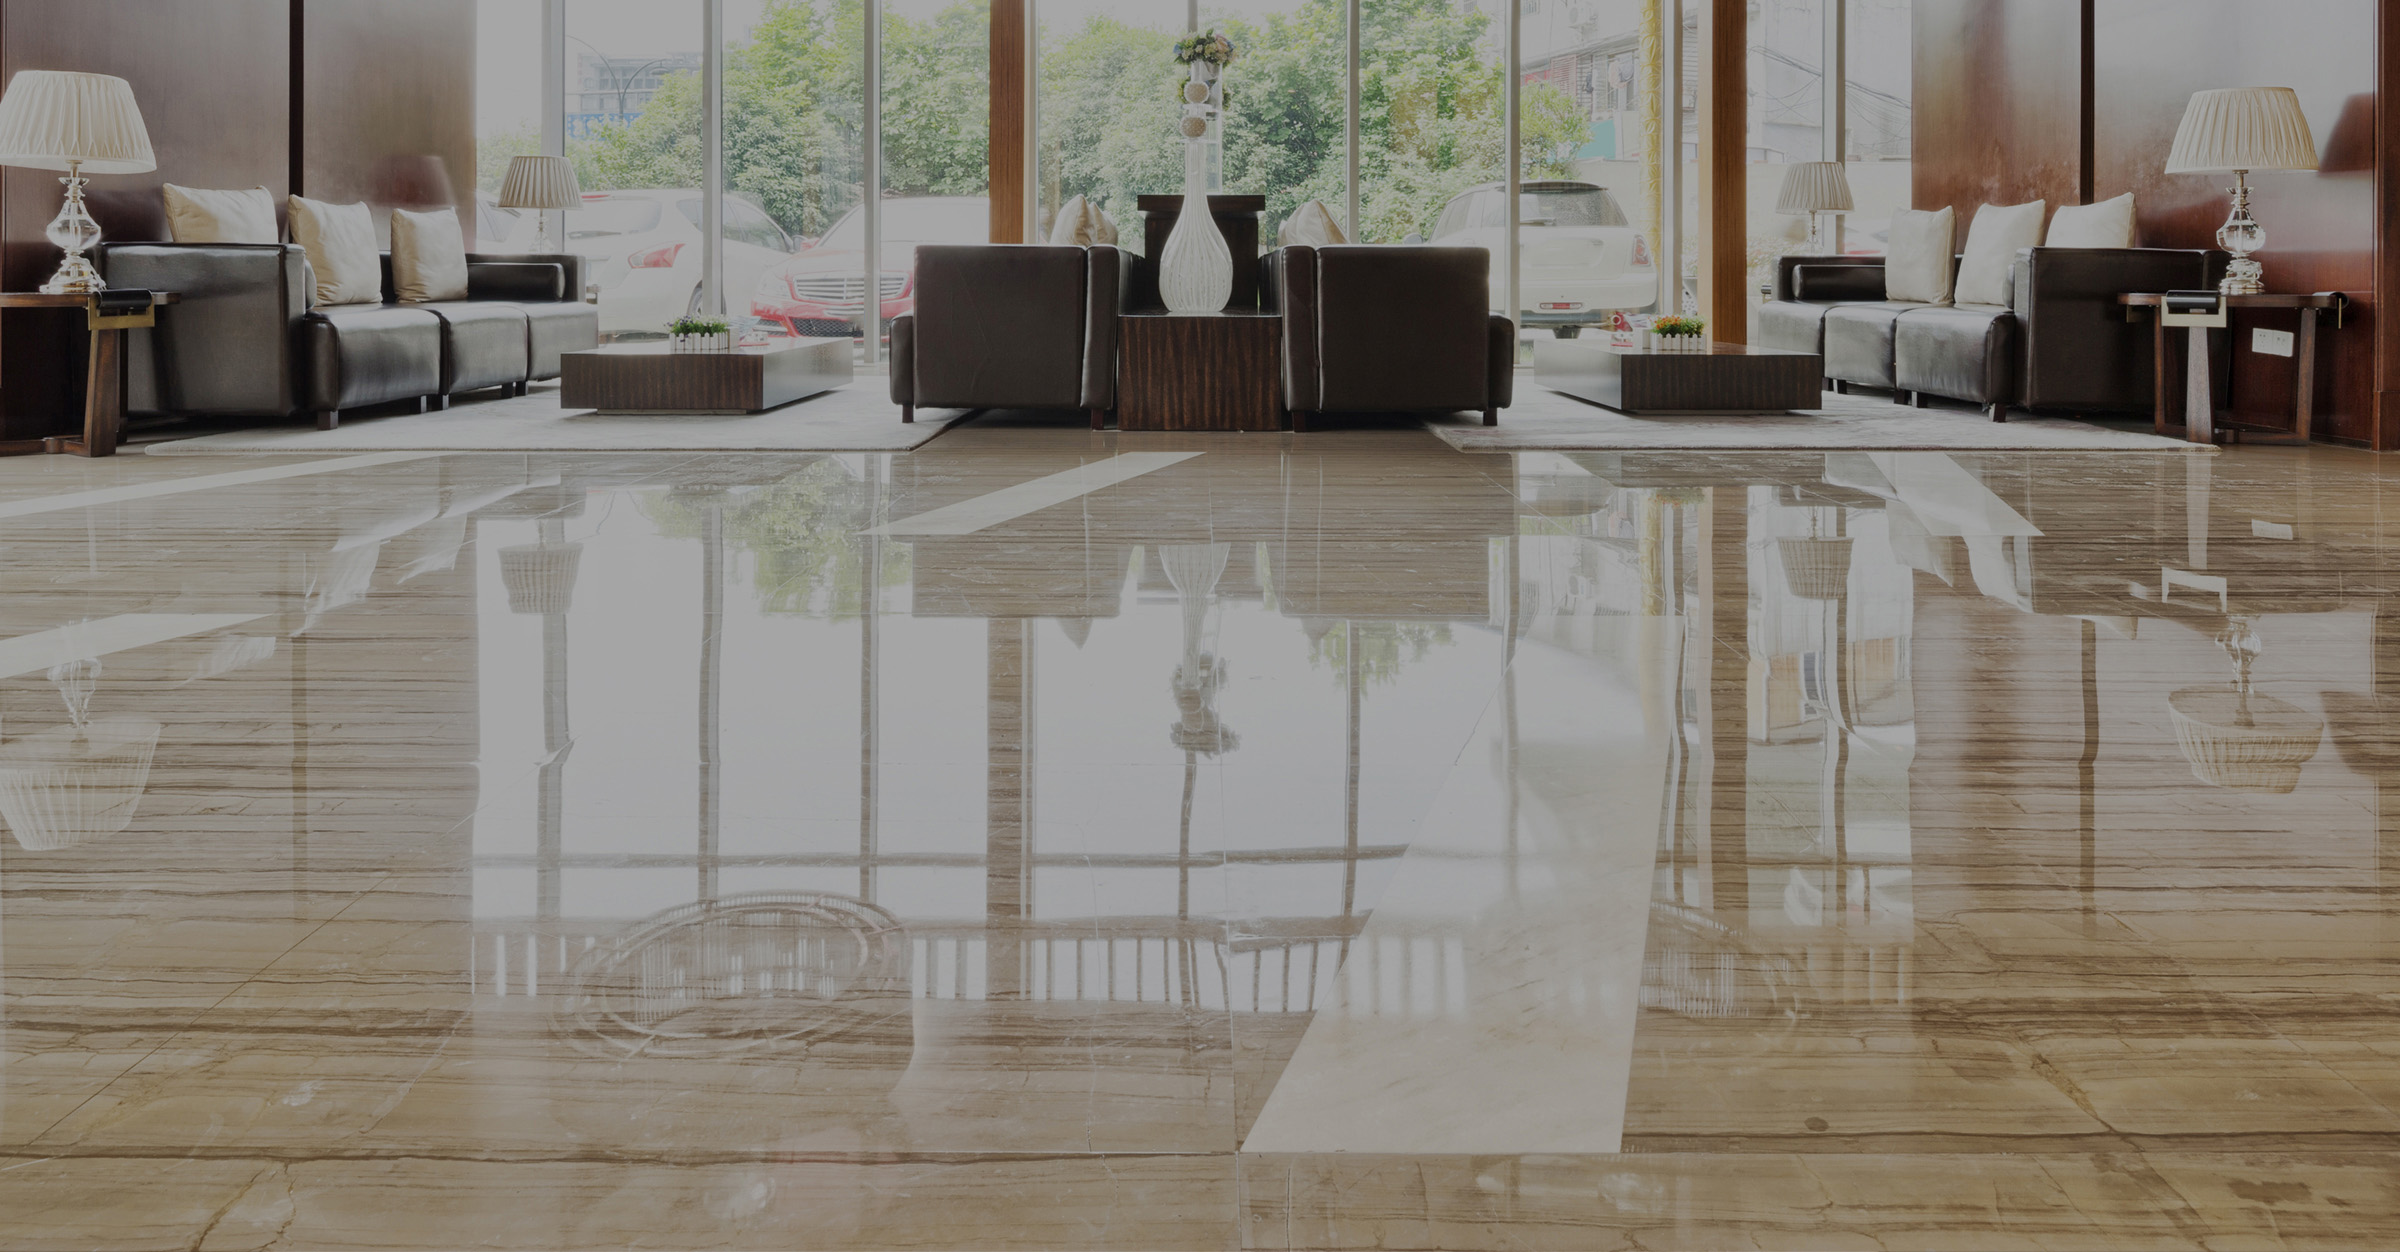 Floor Waxing Services Commercial Cleaning Tulsa Multi Clean